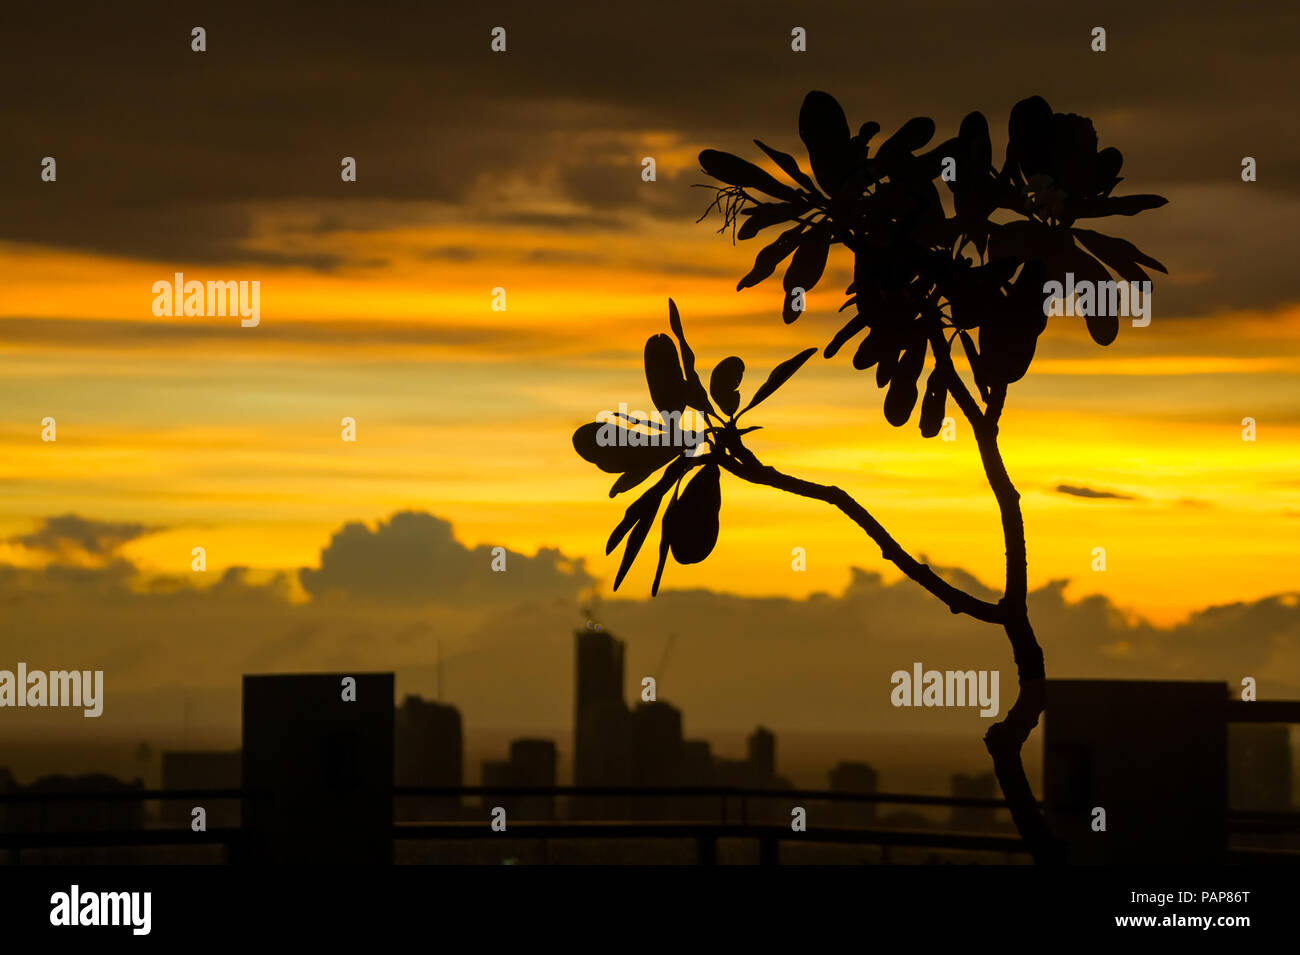 Silhouette of flowering kalachuchi tree with urban building landscape under a beautiful golden cloud sunset - Pasig, Manila - Philippines - Stock Image